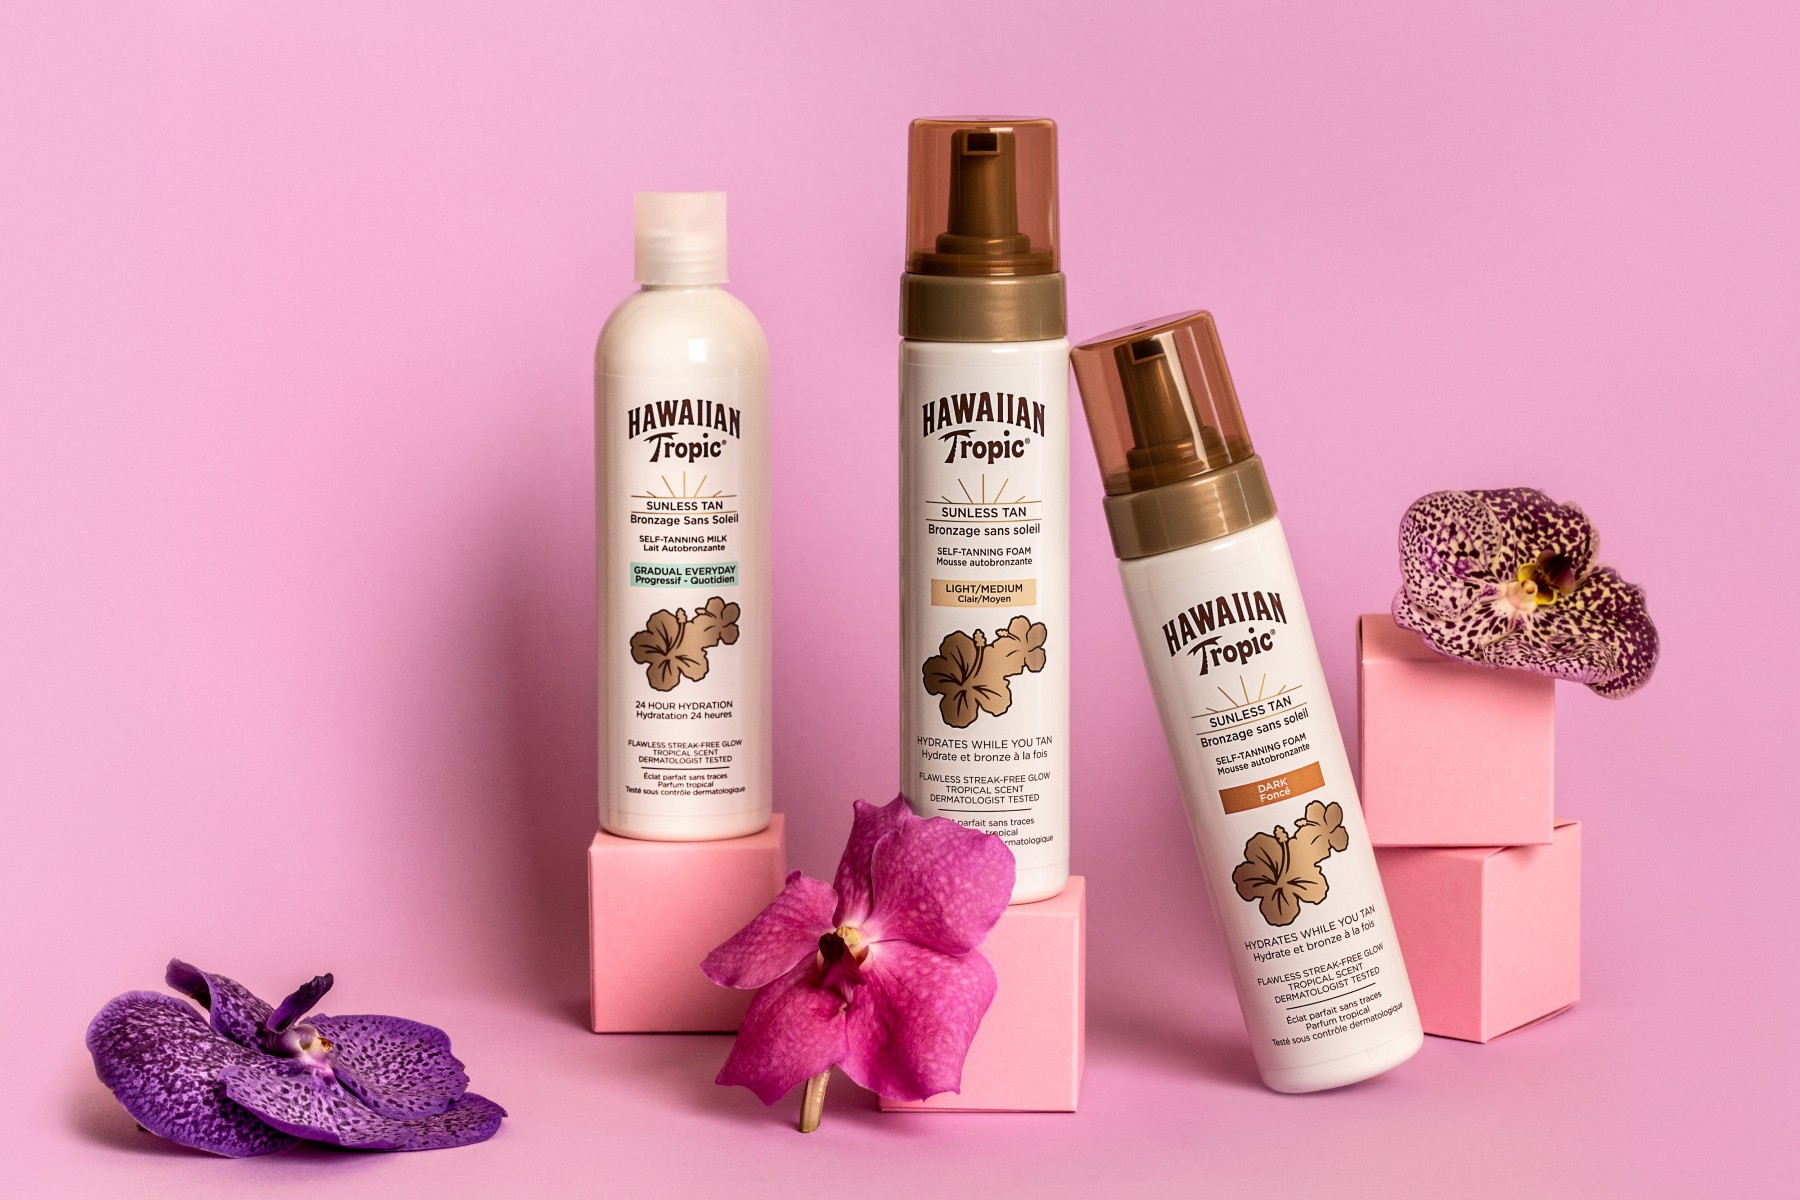 Hawaiian Tropic Sunless tan